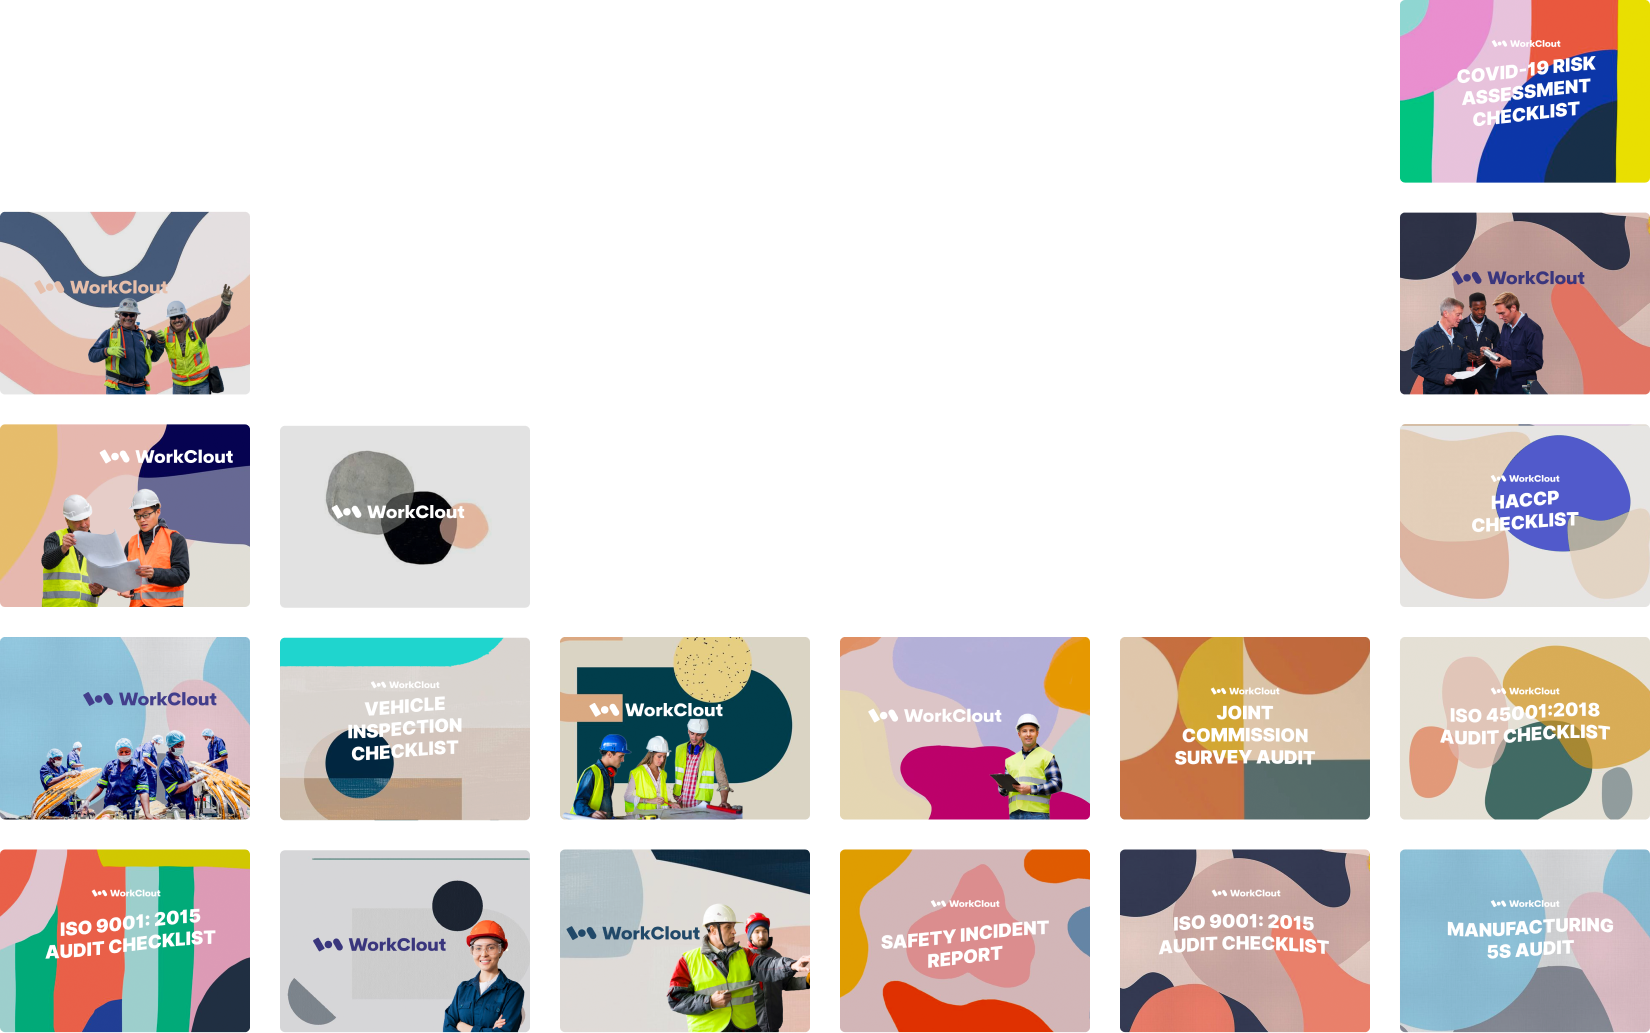 WorkClout inspection template collage